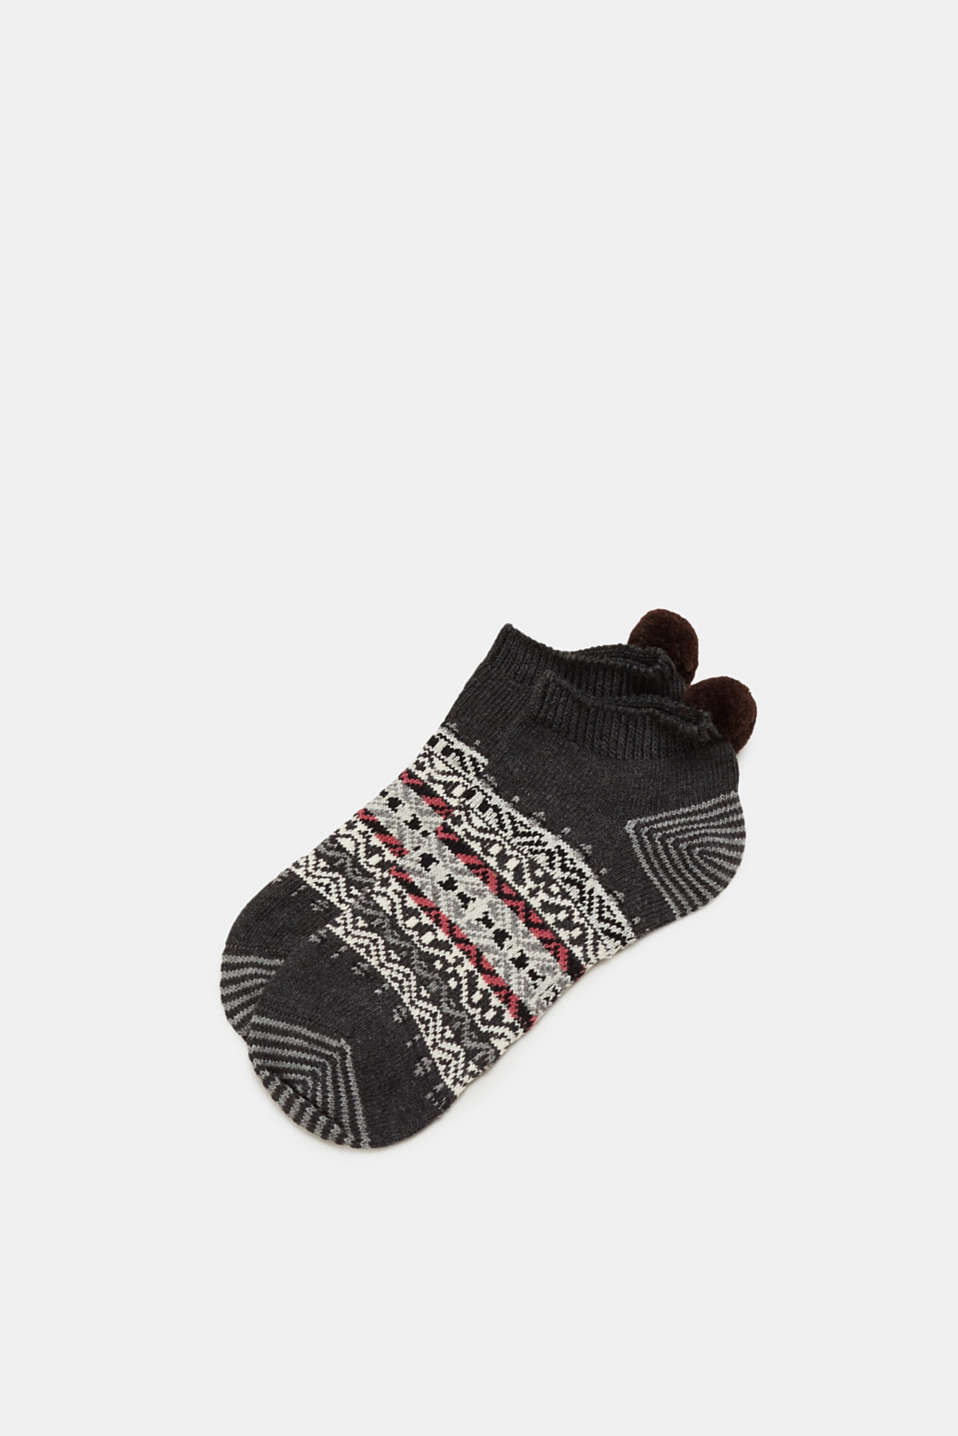 Esprit - Sneaker socks with a Norwegian pattern and a pompom